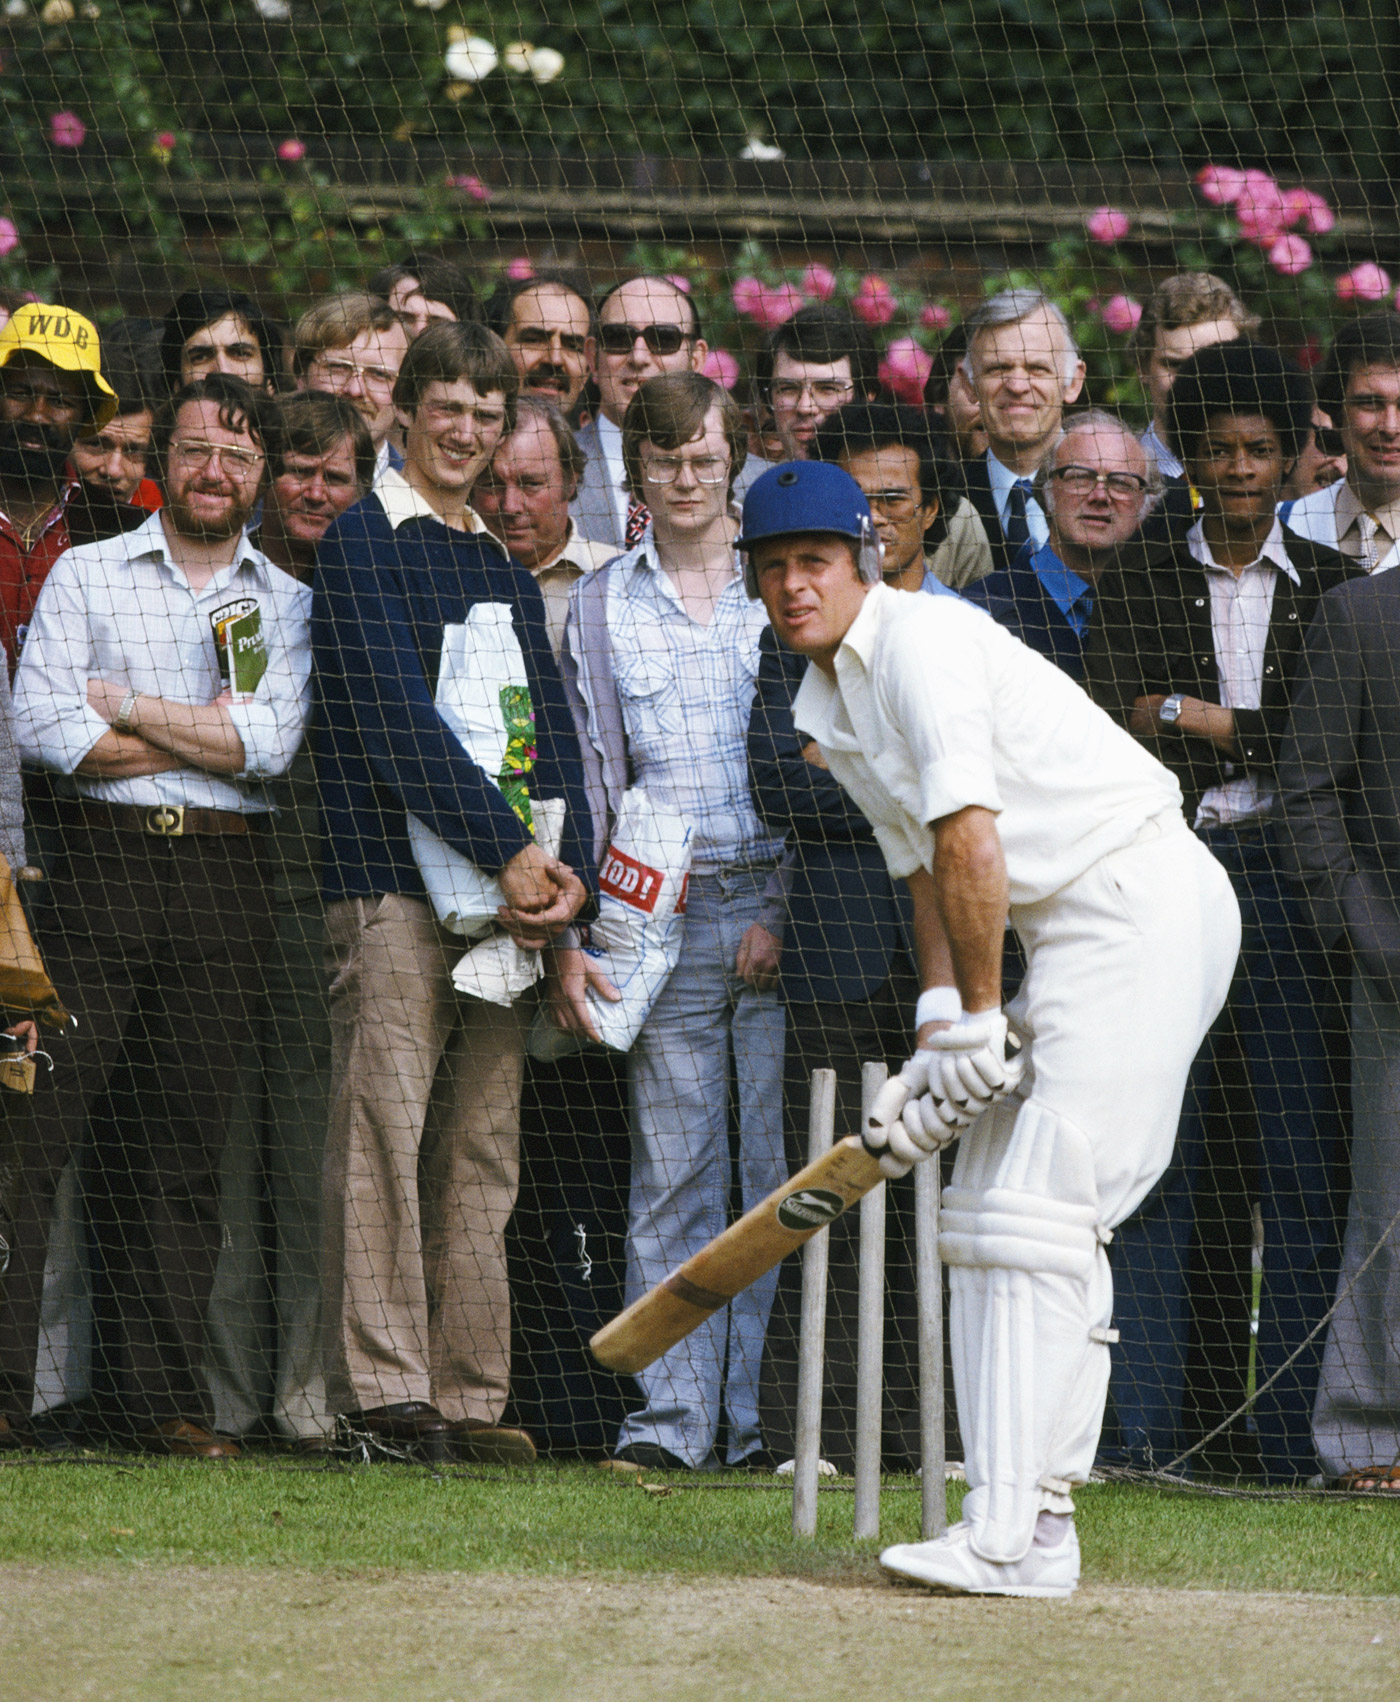 Geoff Boycott's compact sideways stance isn't coached these days because coaches worry about the front foot going too far across